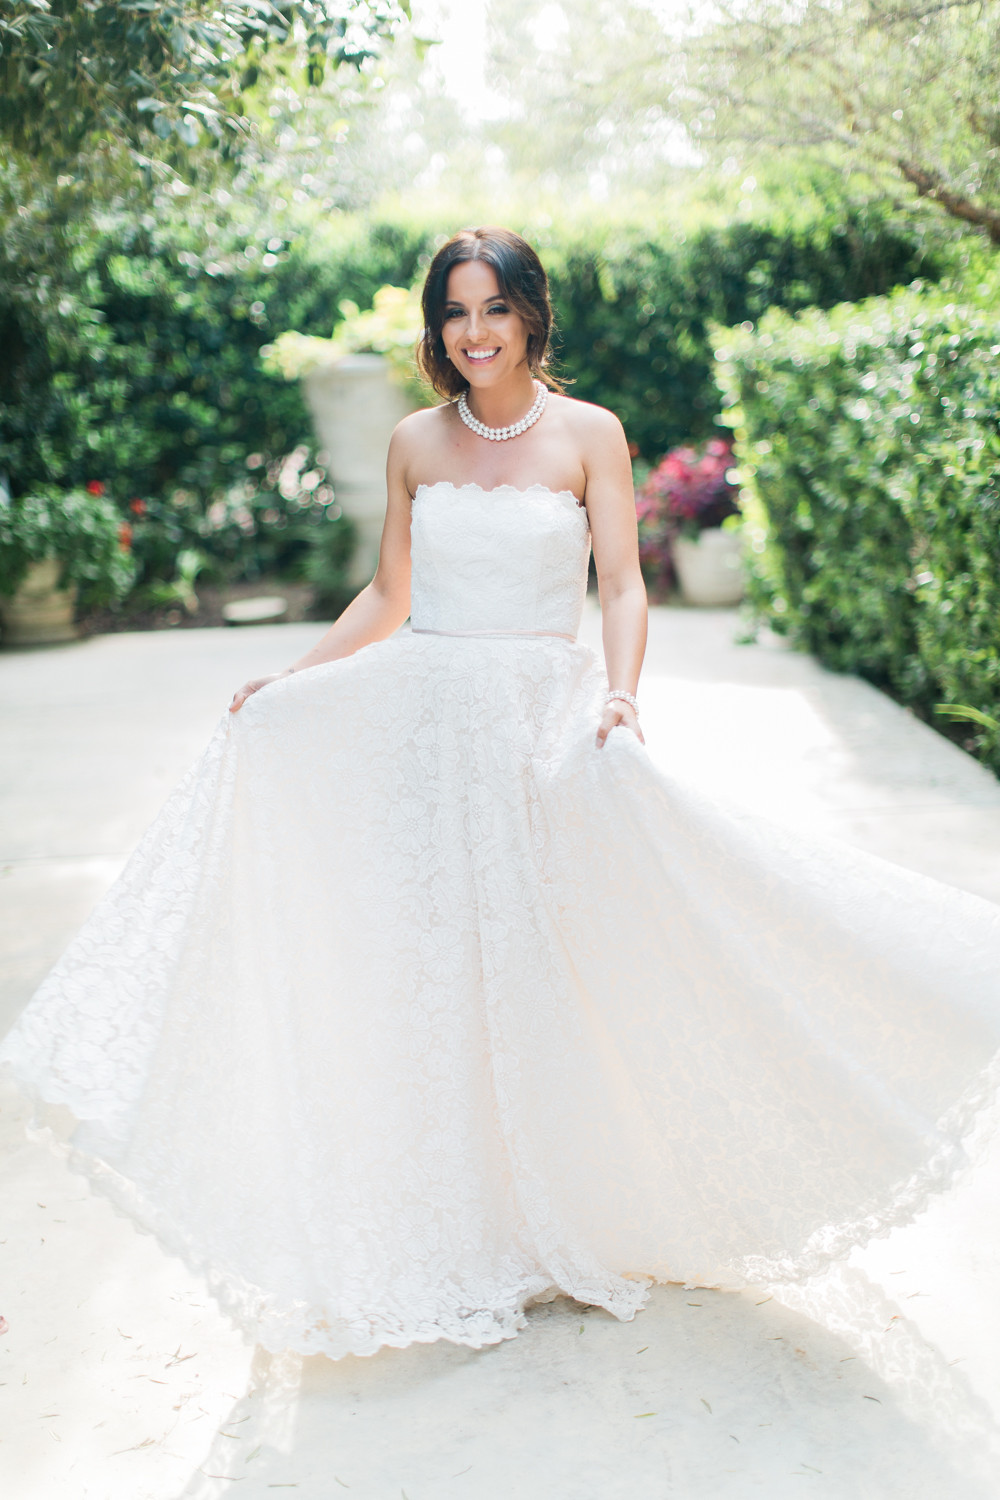 Bride poses in her dress with a big smile on her face